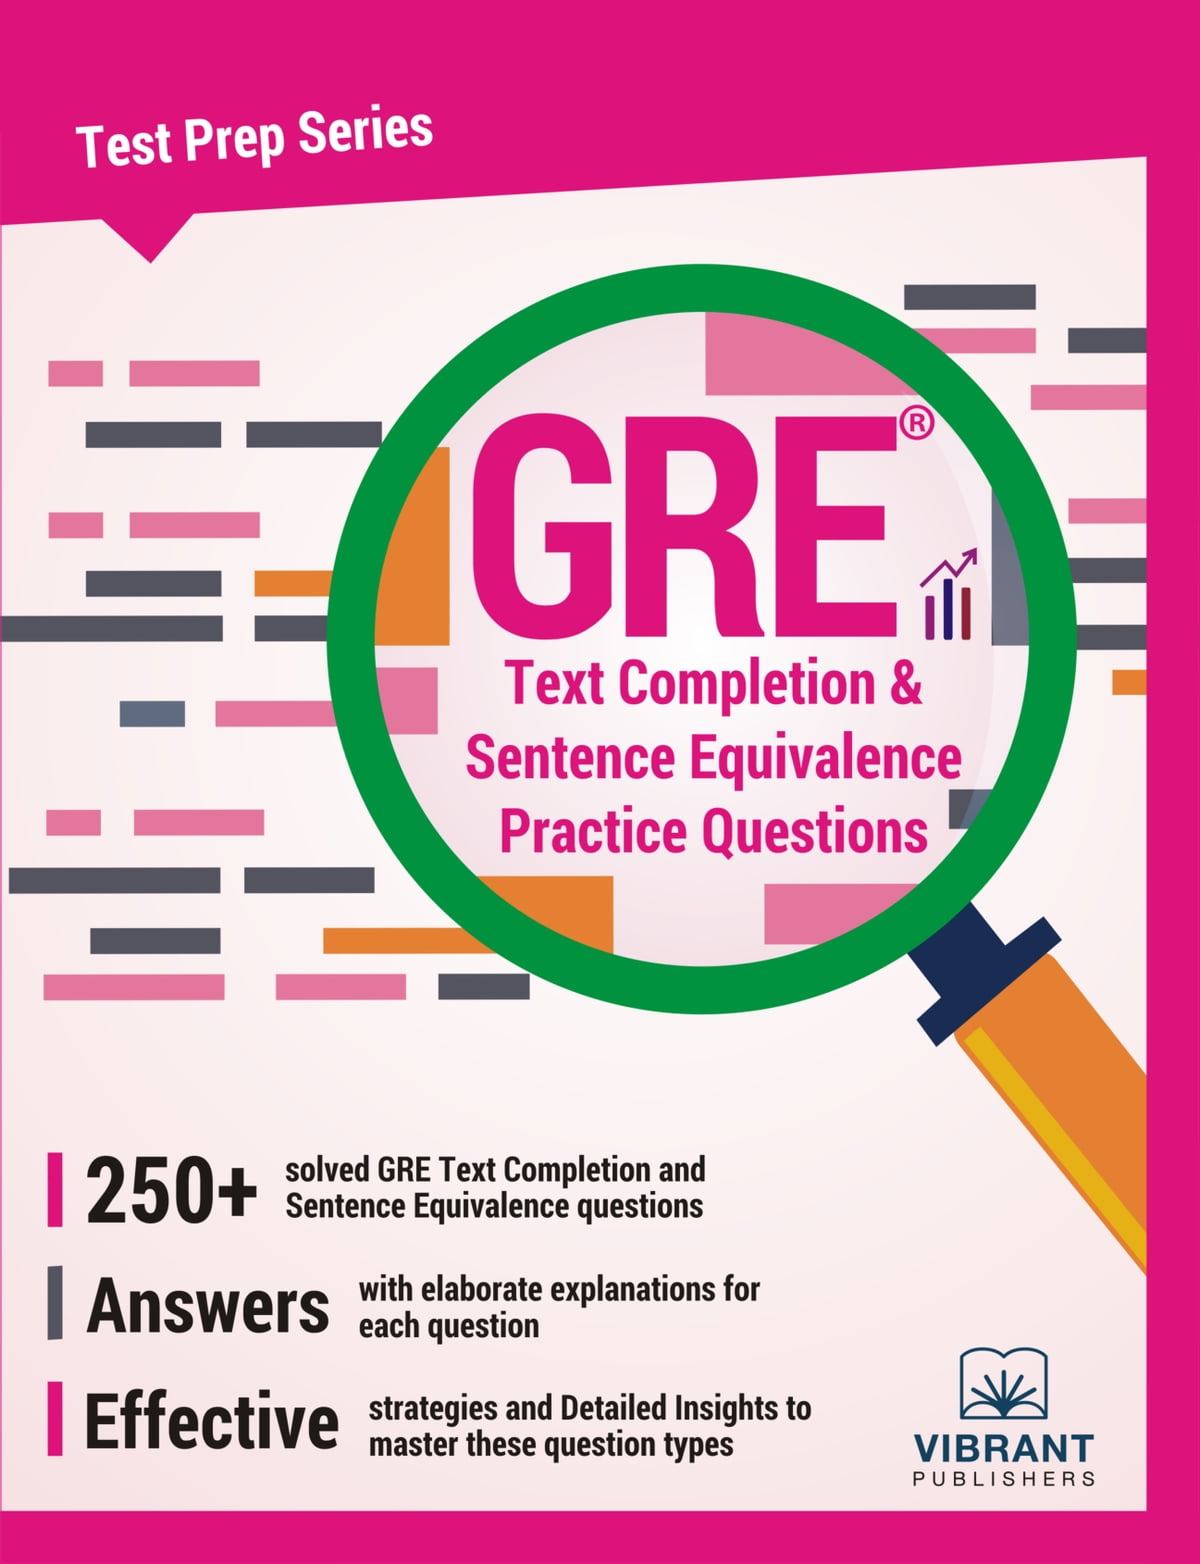 Workbooks kaplan gre verbal workbook : GRE Text Completion and Sentence Equivalence Practice Questions ...